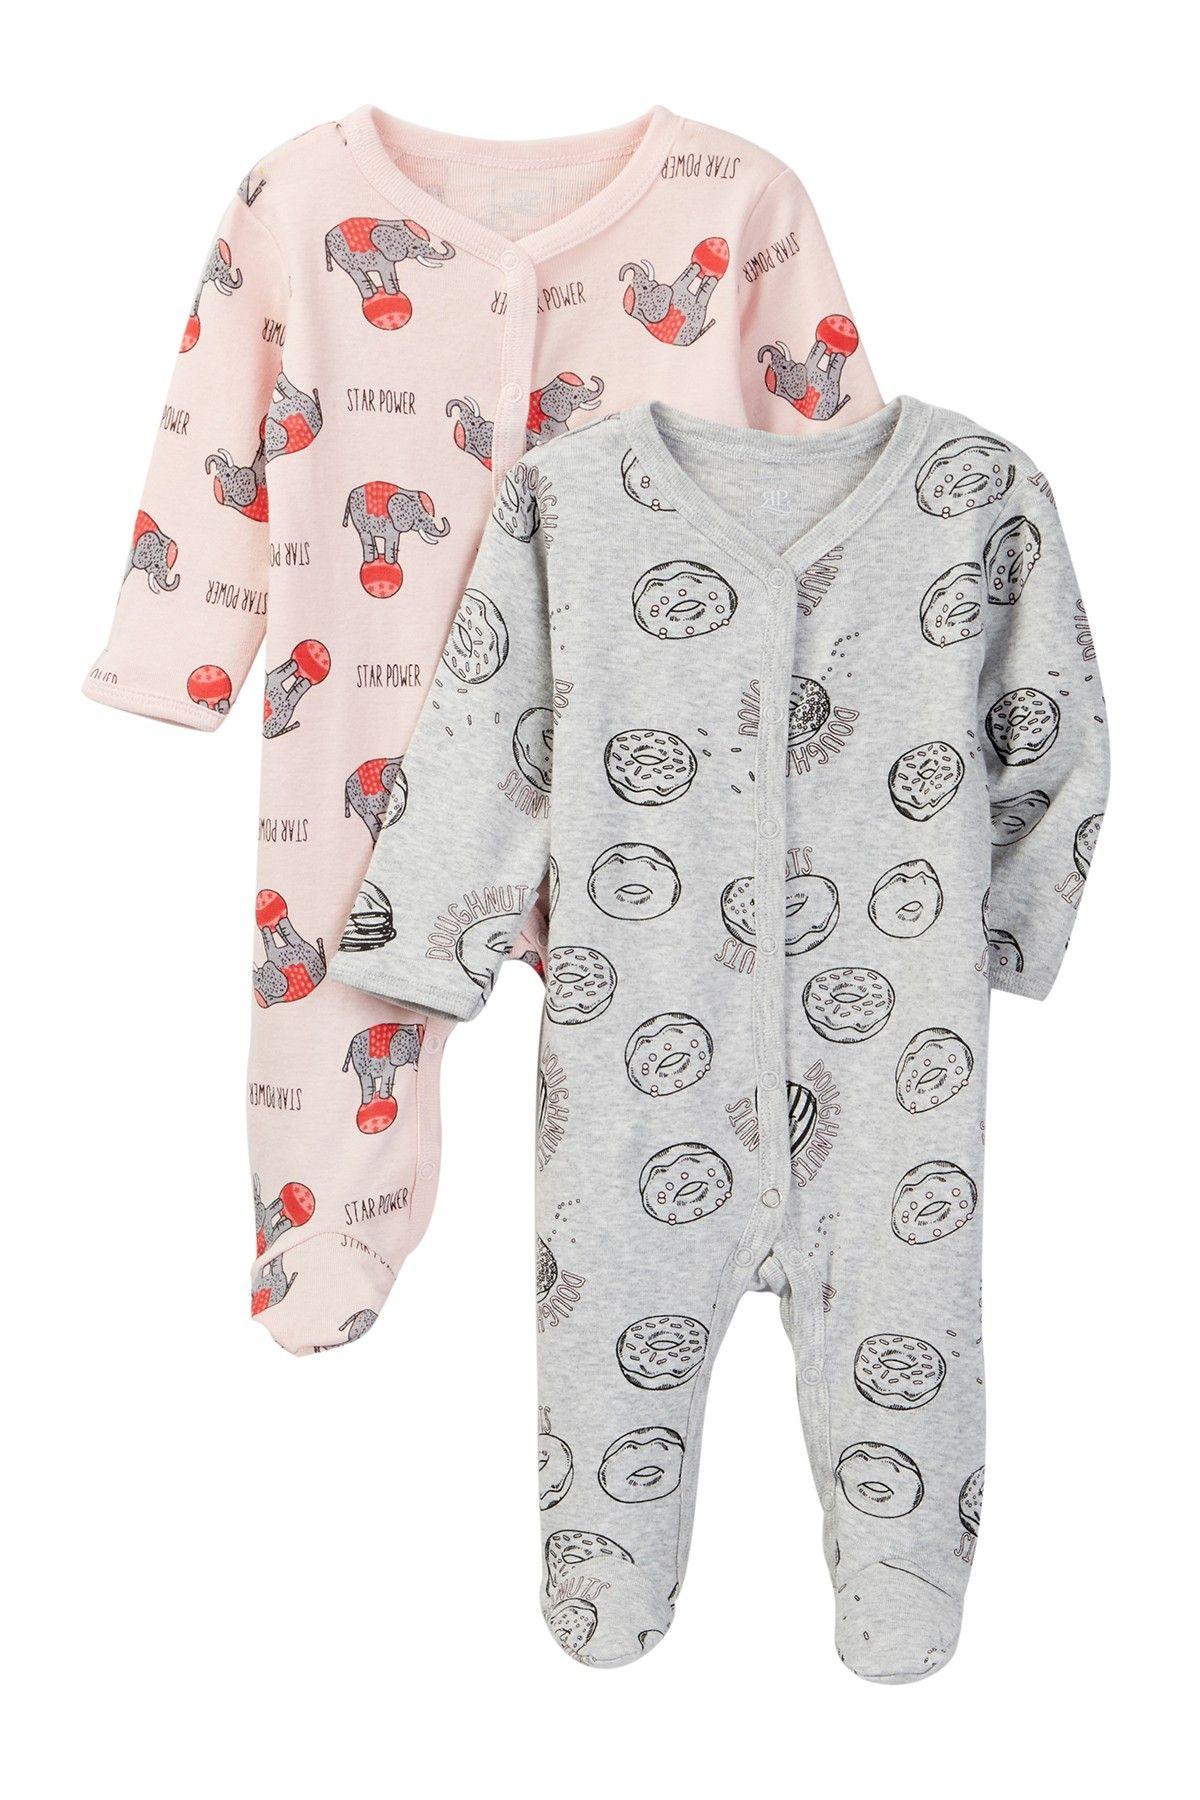 Circus Print Footies - Pack of 2 (Baby Girls)